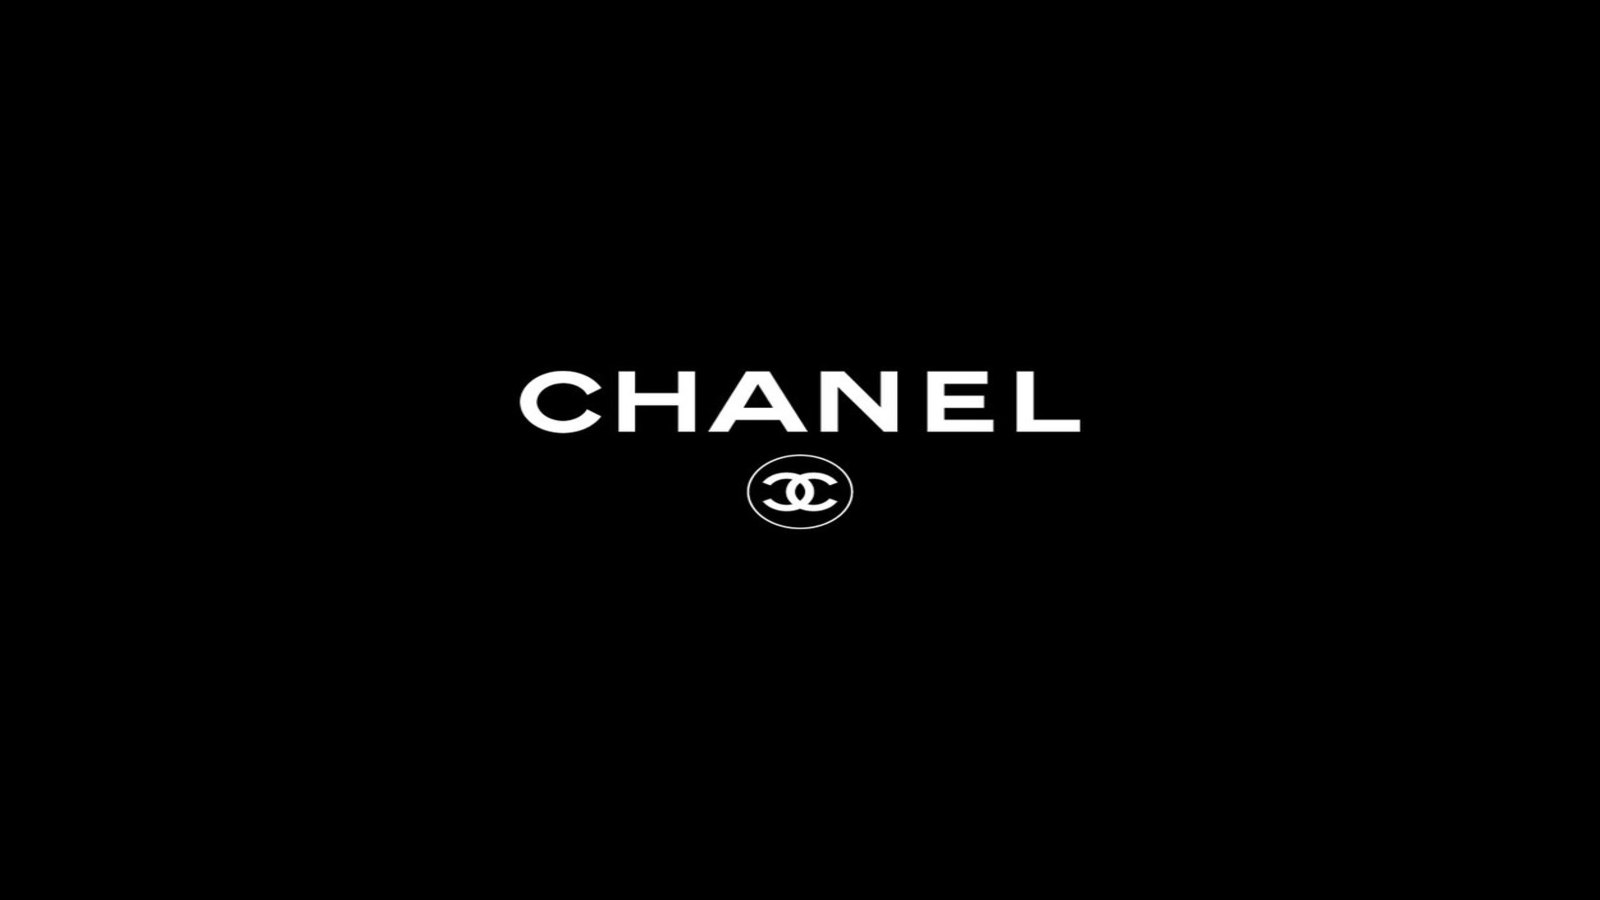 Chanel Wallpaper and Background Image | 1600x900 | ID:436328